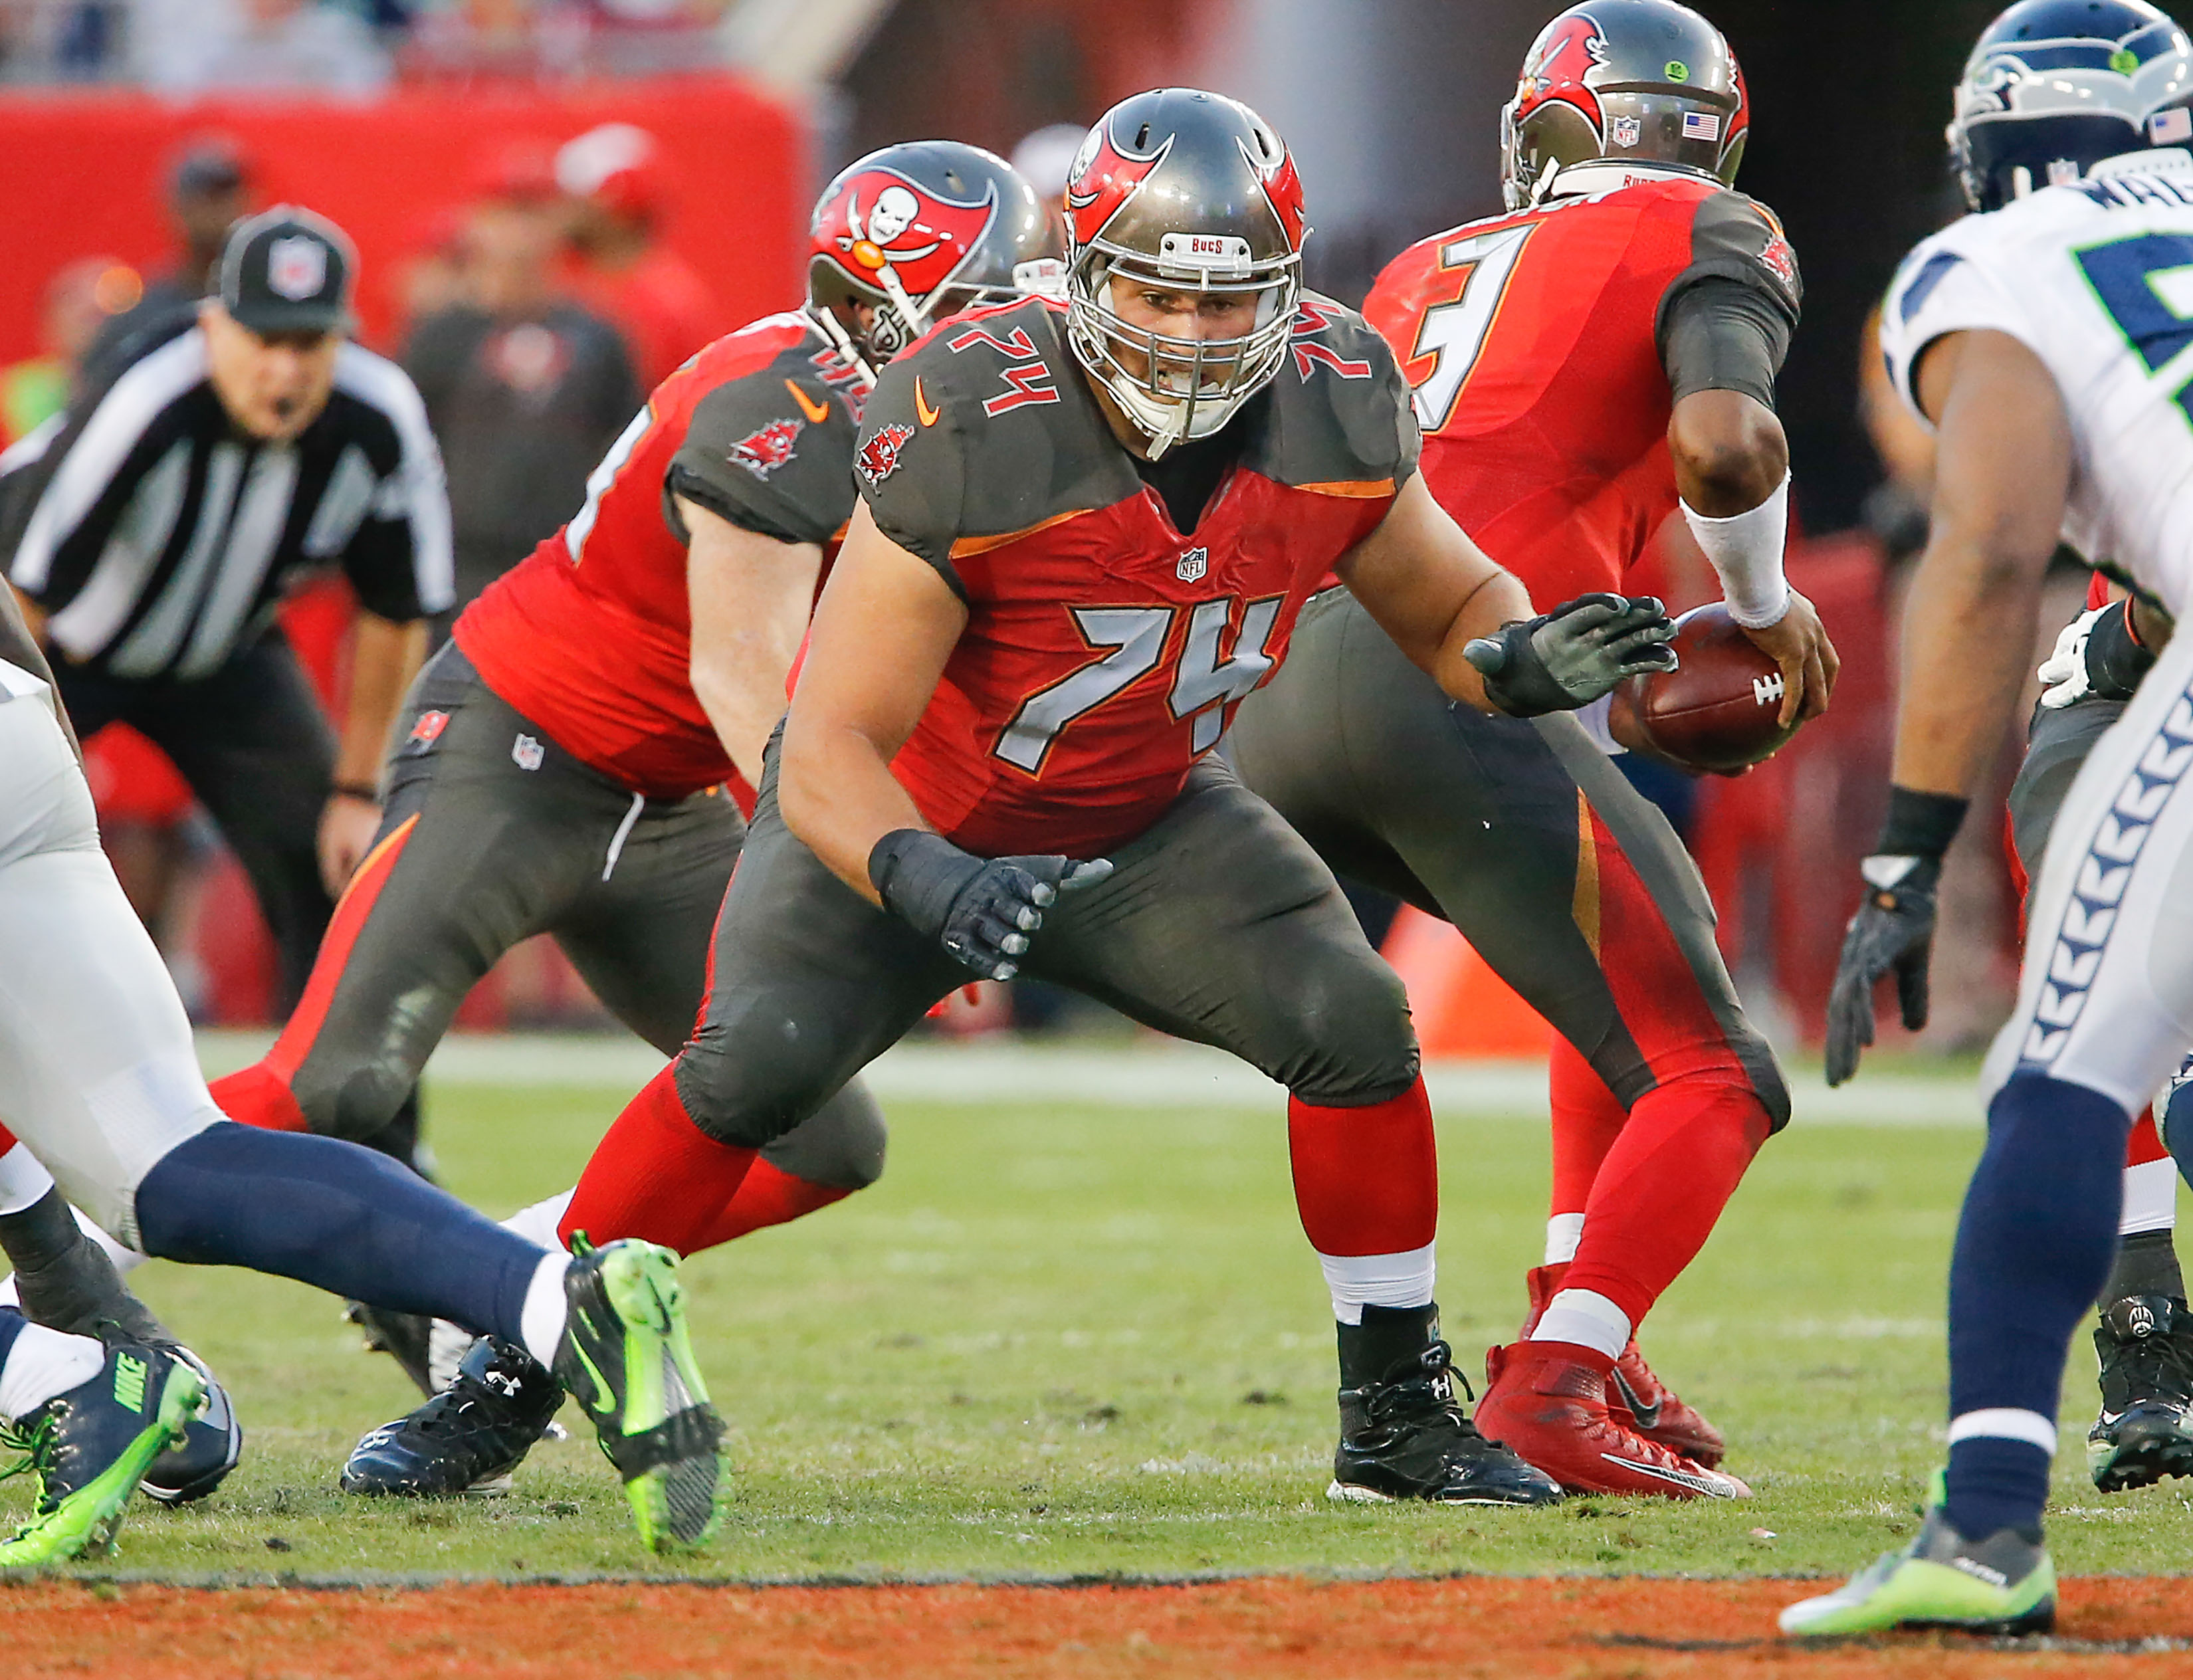 9718949-nfl-seattle-seahawks-at-tampa-bay-buccaneers